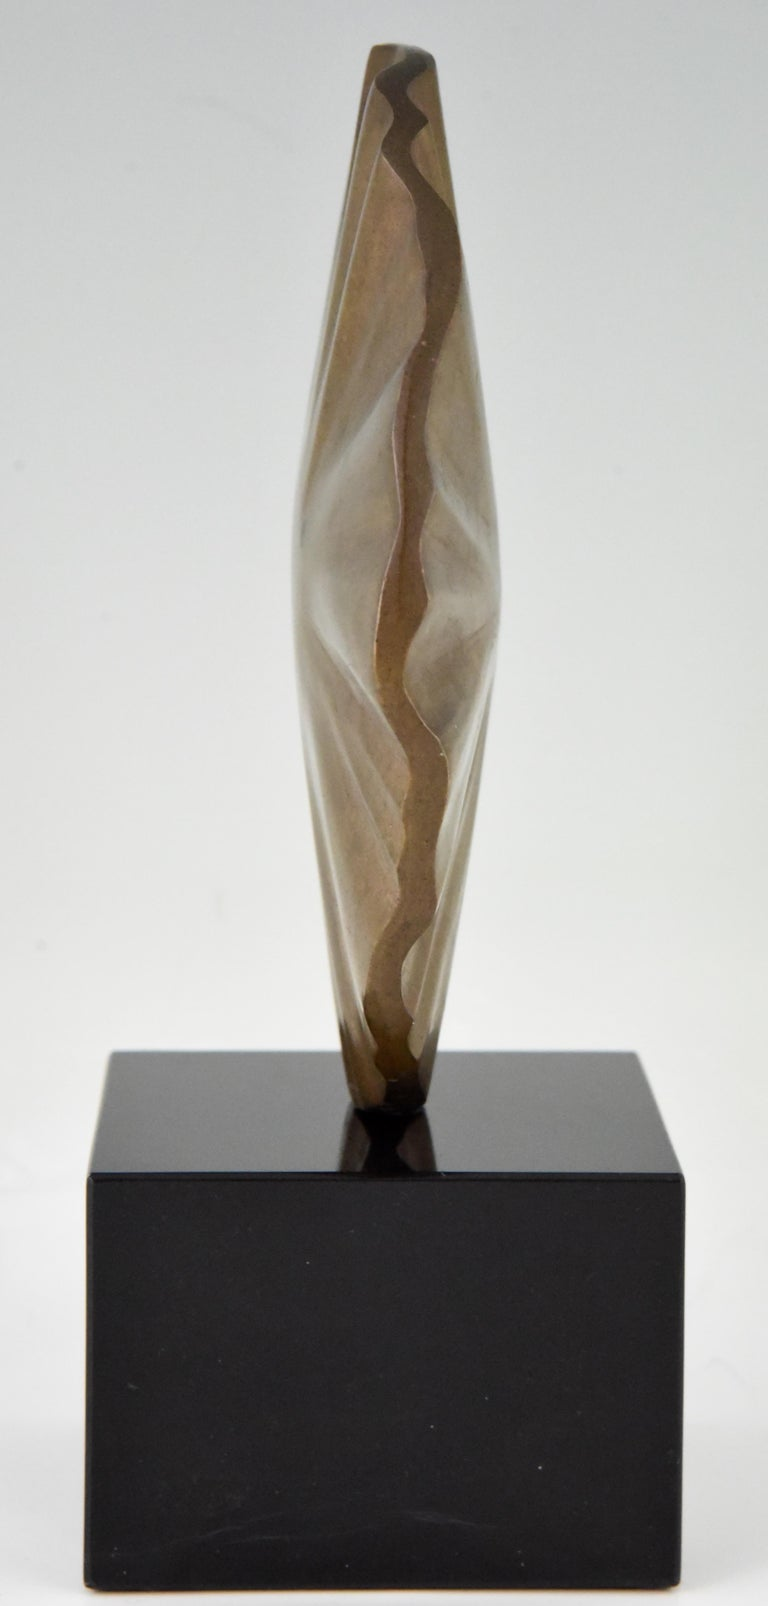 Midcentury Abstract Bronze Sculpture Claudio Capotondi  Italy  1979 For Sale 1